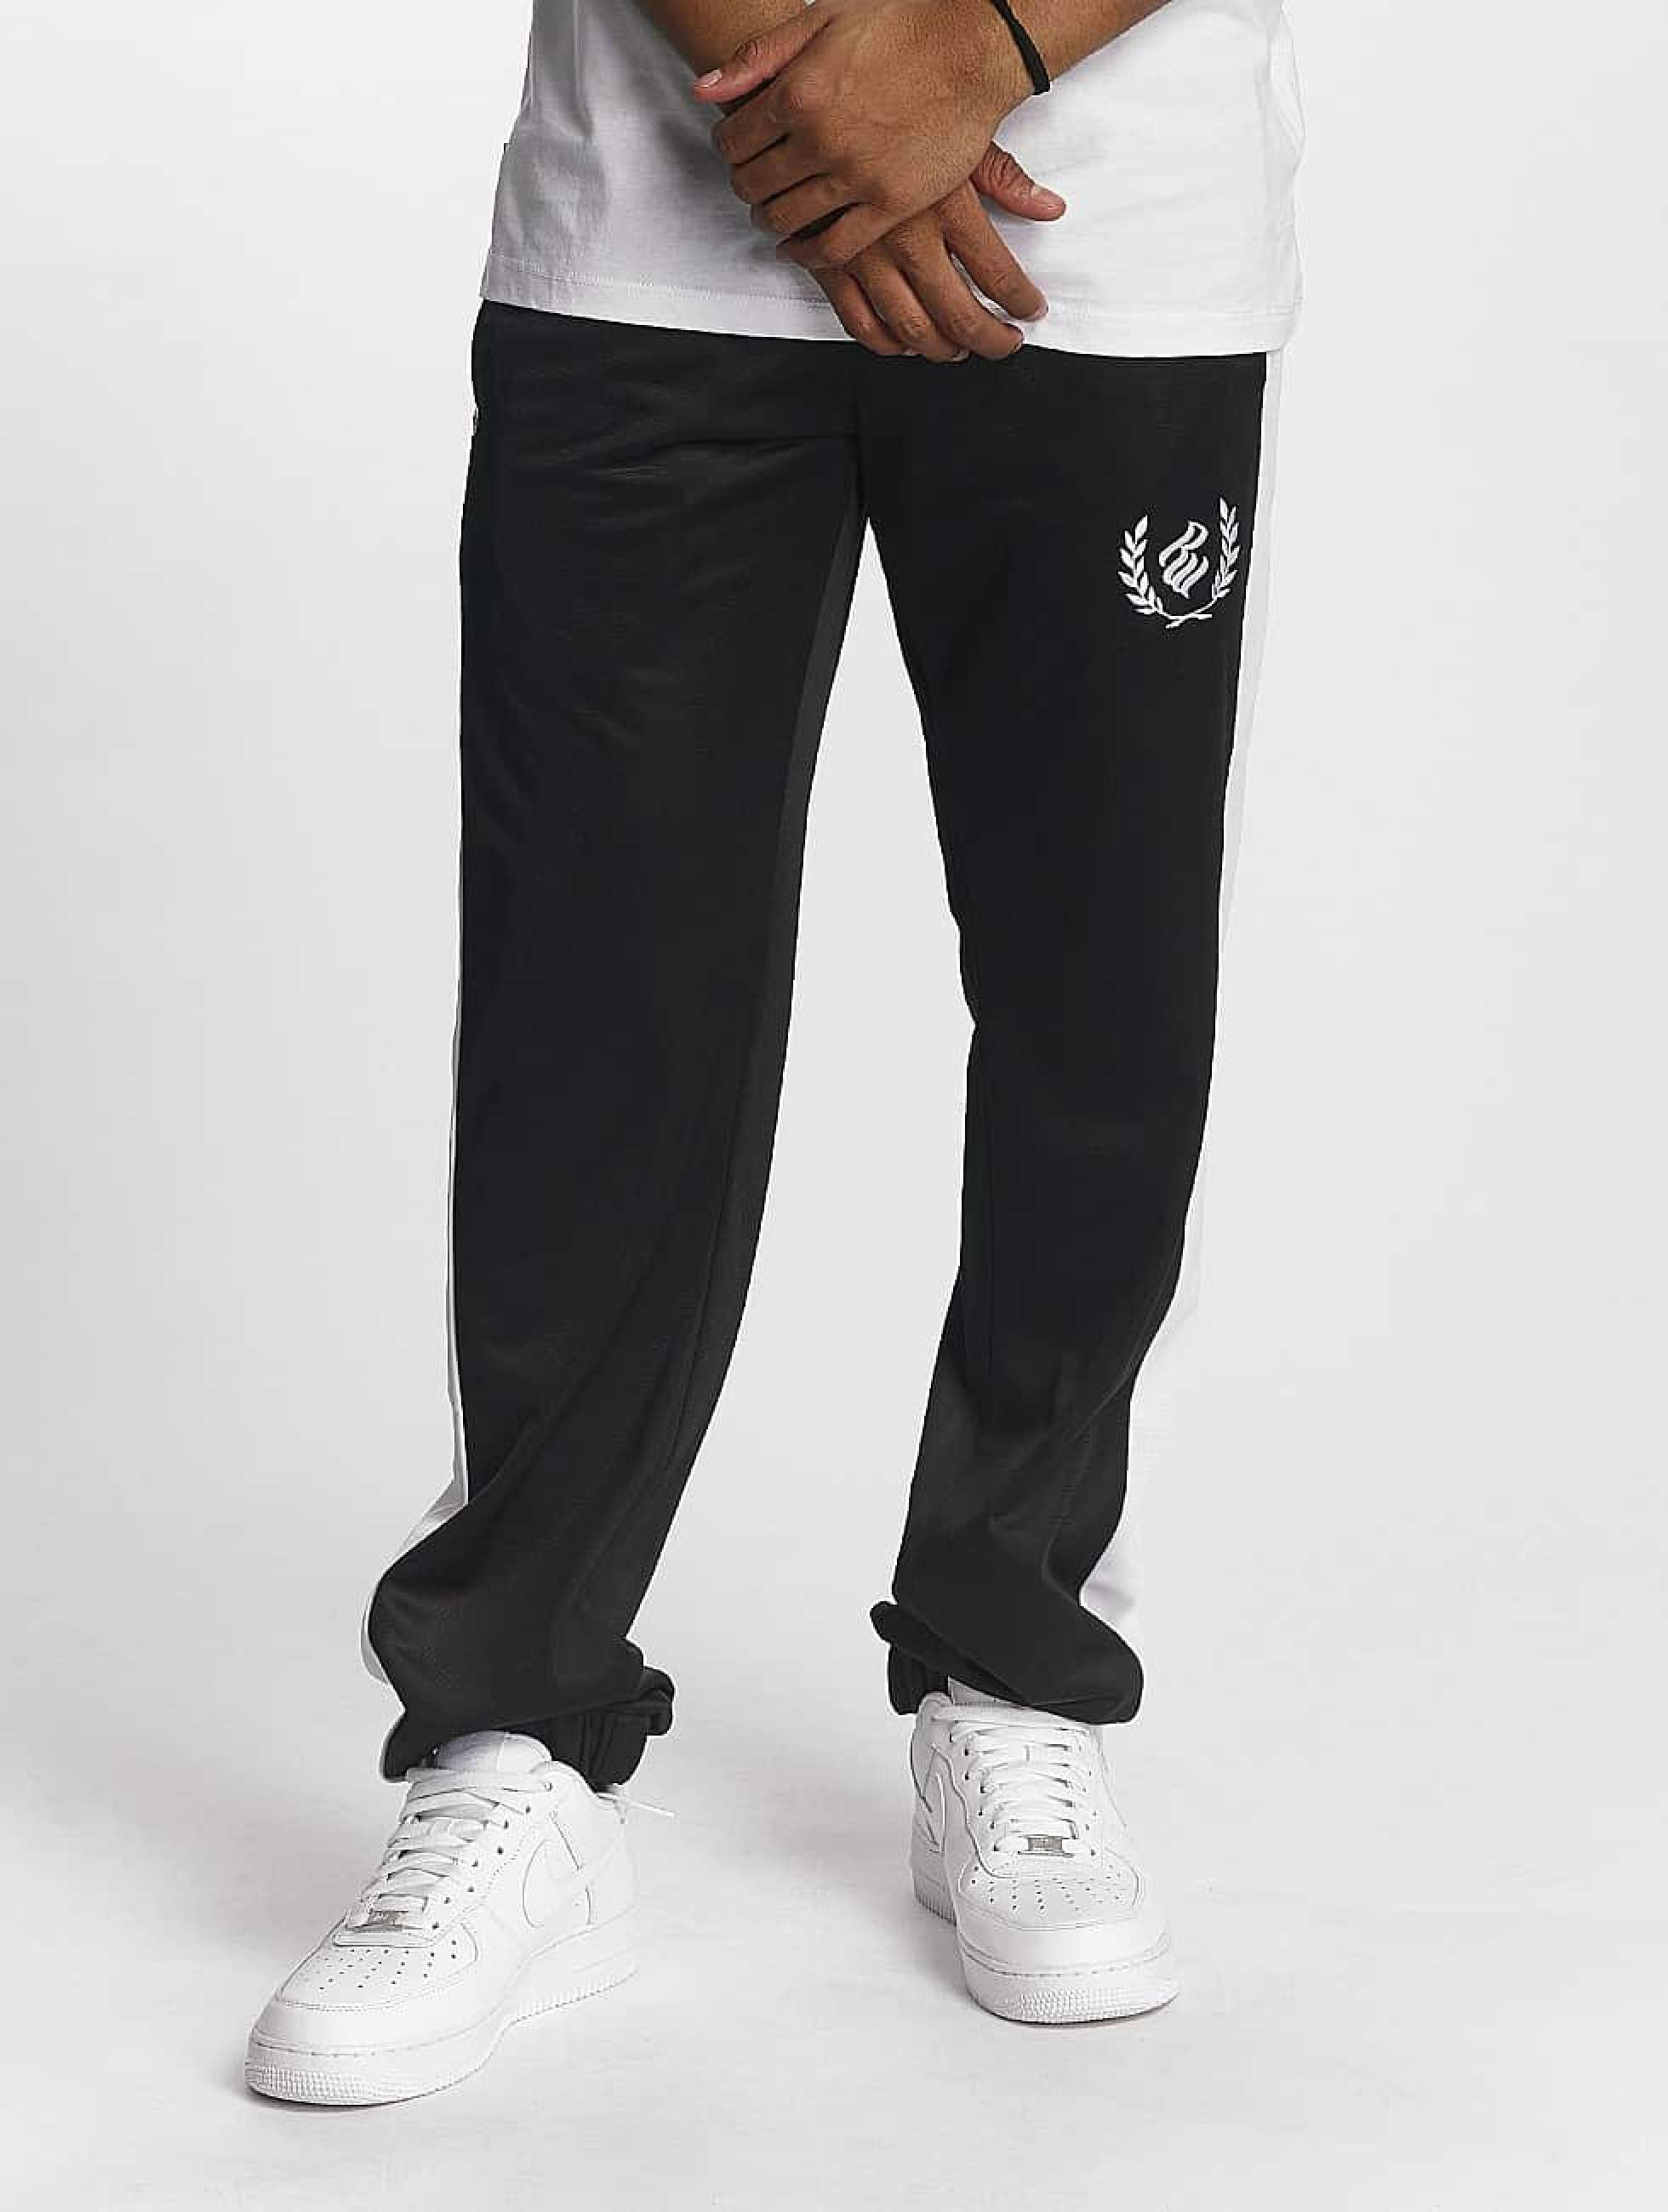 Rocawear / Sweat Pant Lisias in black 2XL